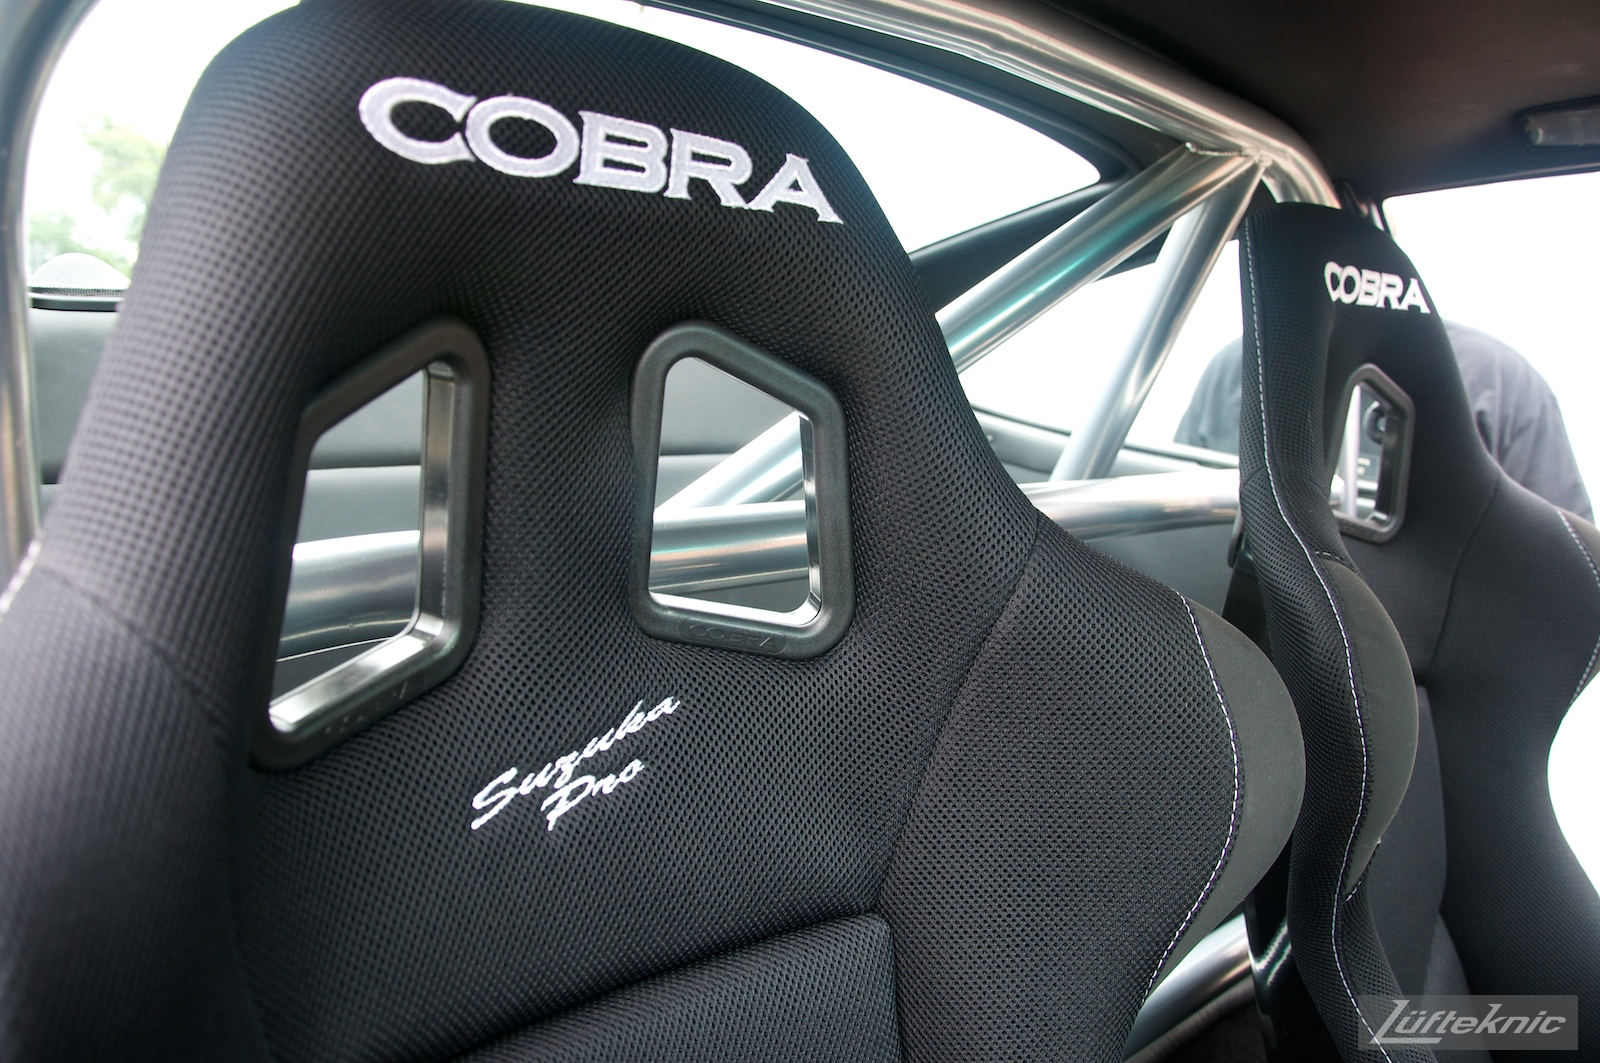 Cobra seats and roll bar mounted in a black 993 Porsche Turbo.